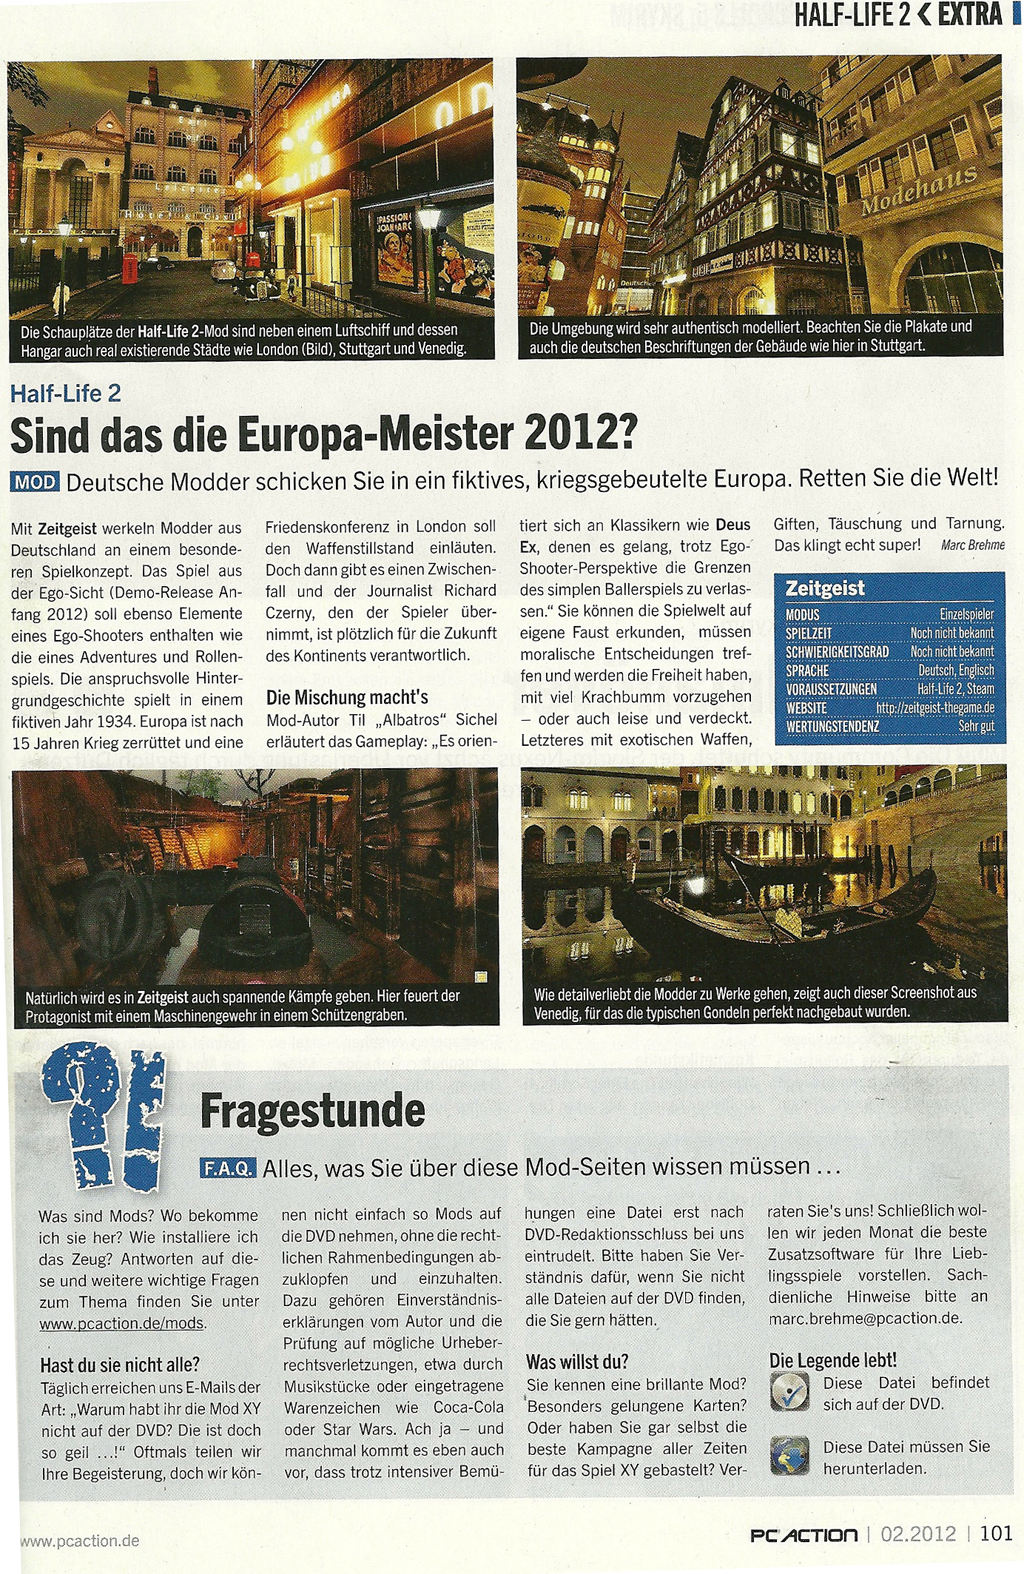 artikel_pcaction_022012_01.jpg